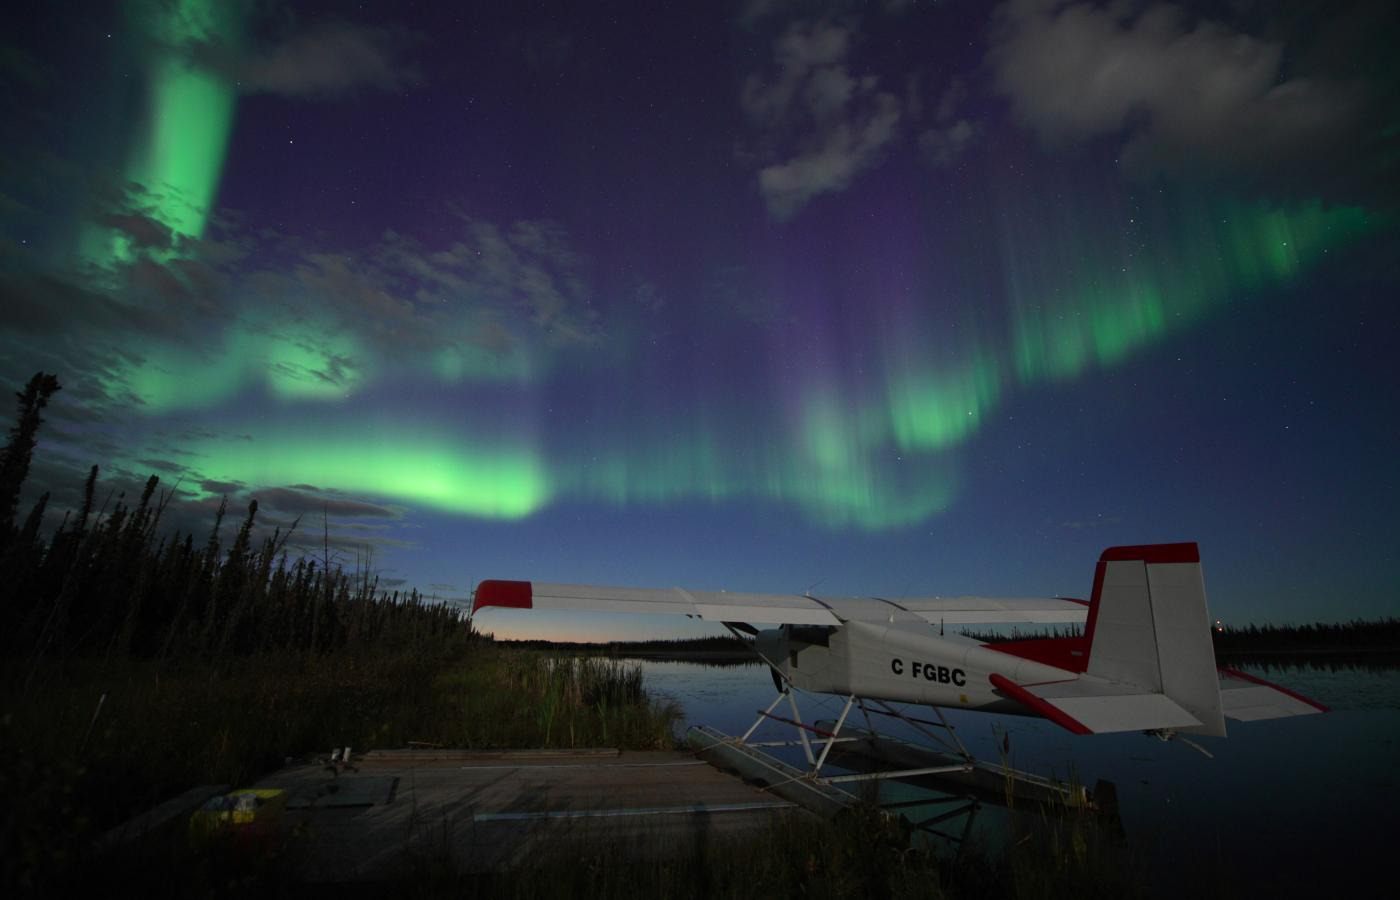 Northern Aurora Borealis viewing at Wilderness lodges